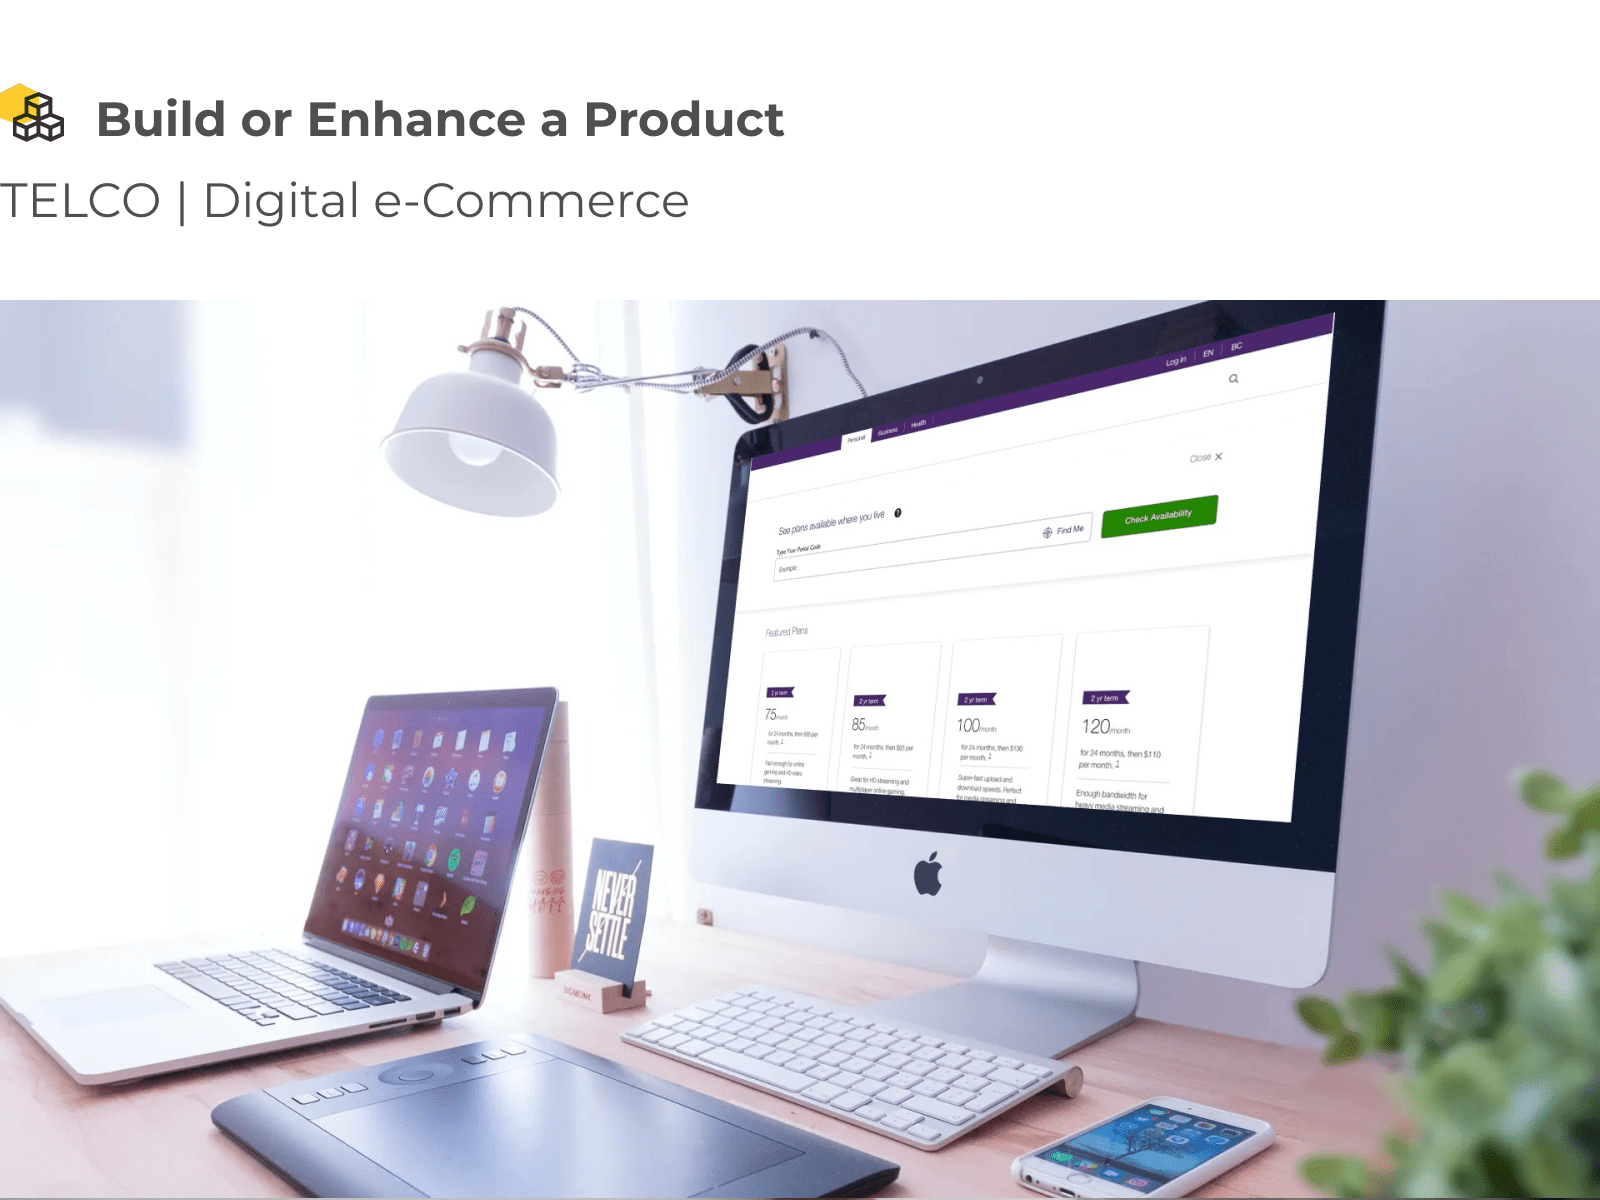 A desktop interface for a telecommunication digital eCommerce platform